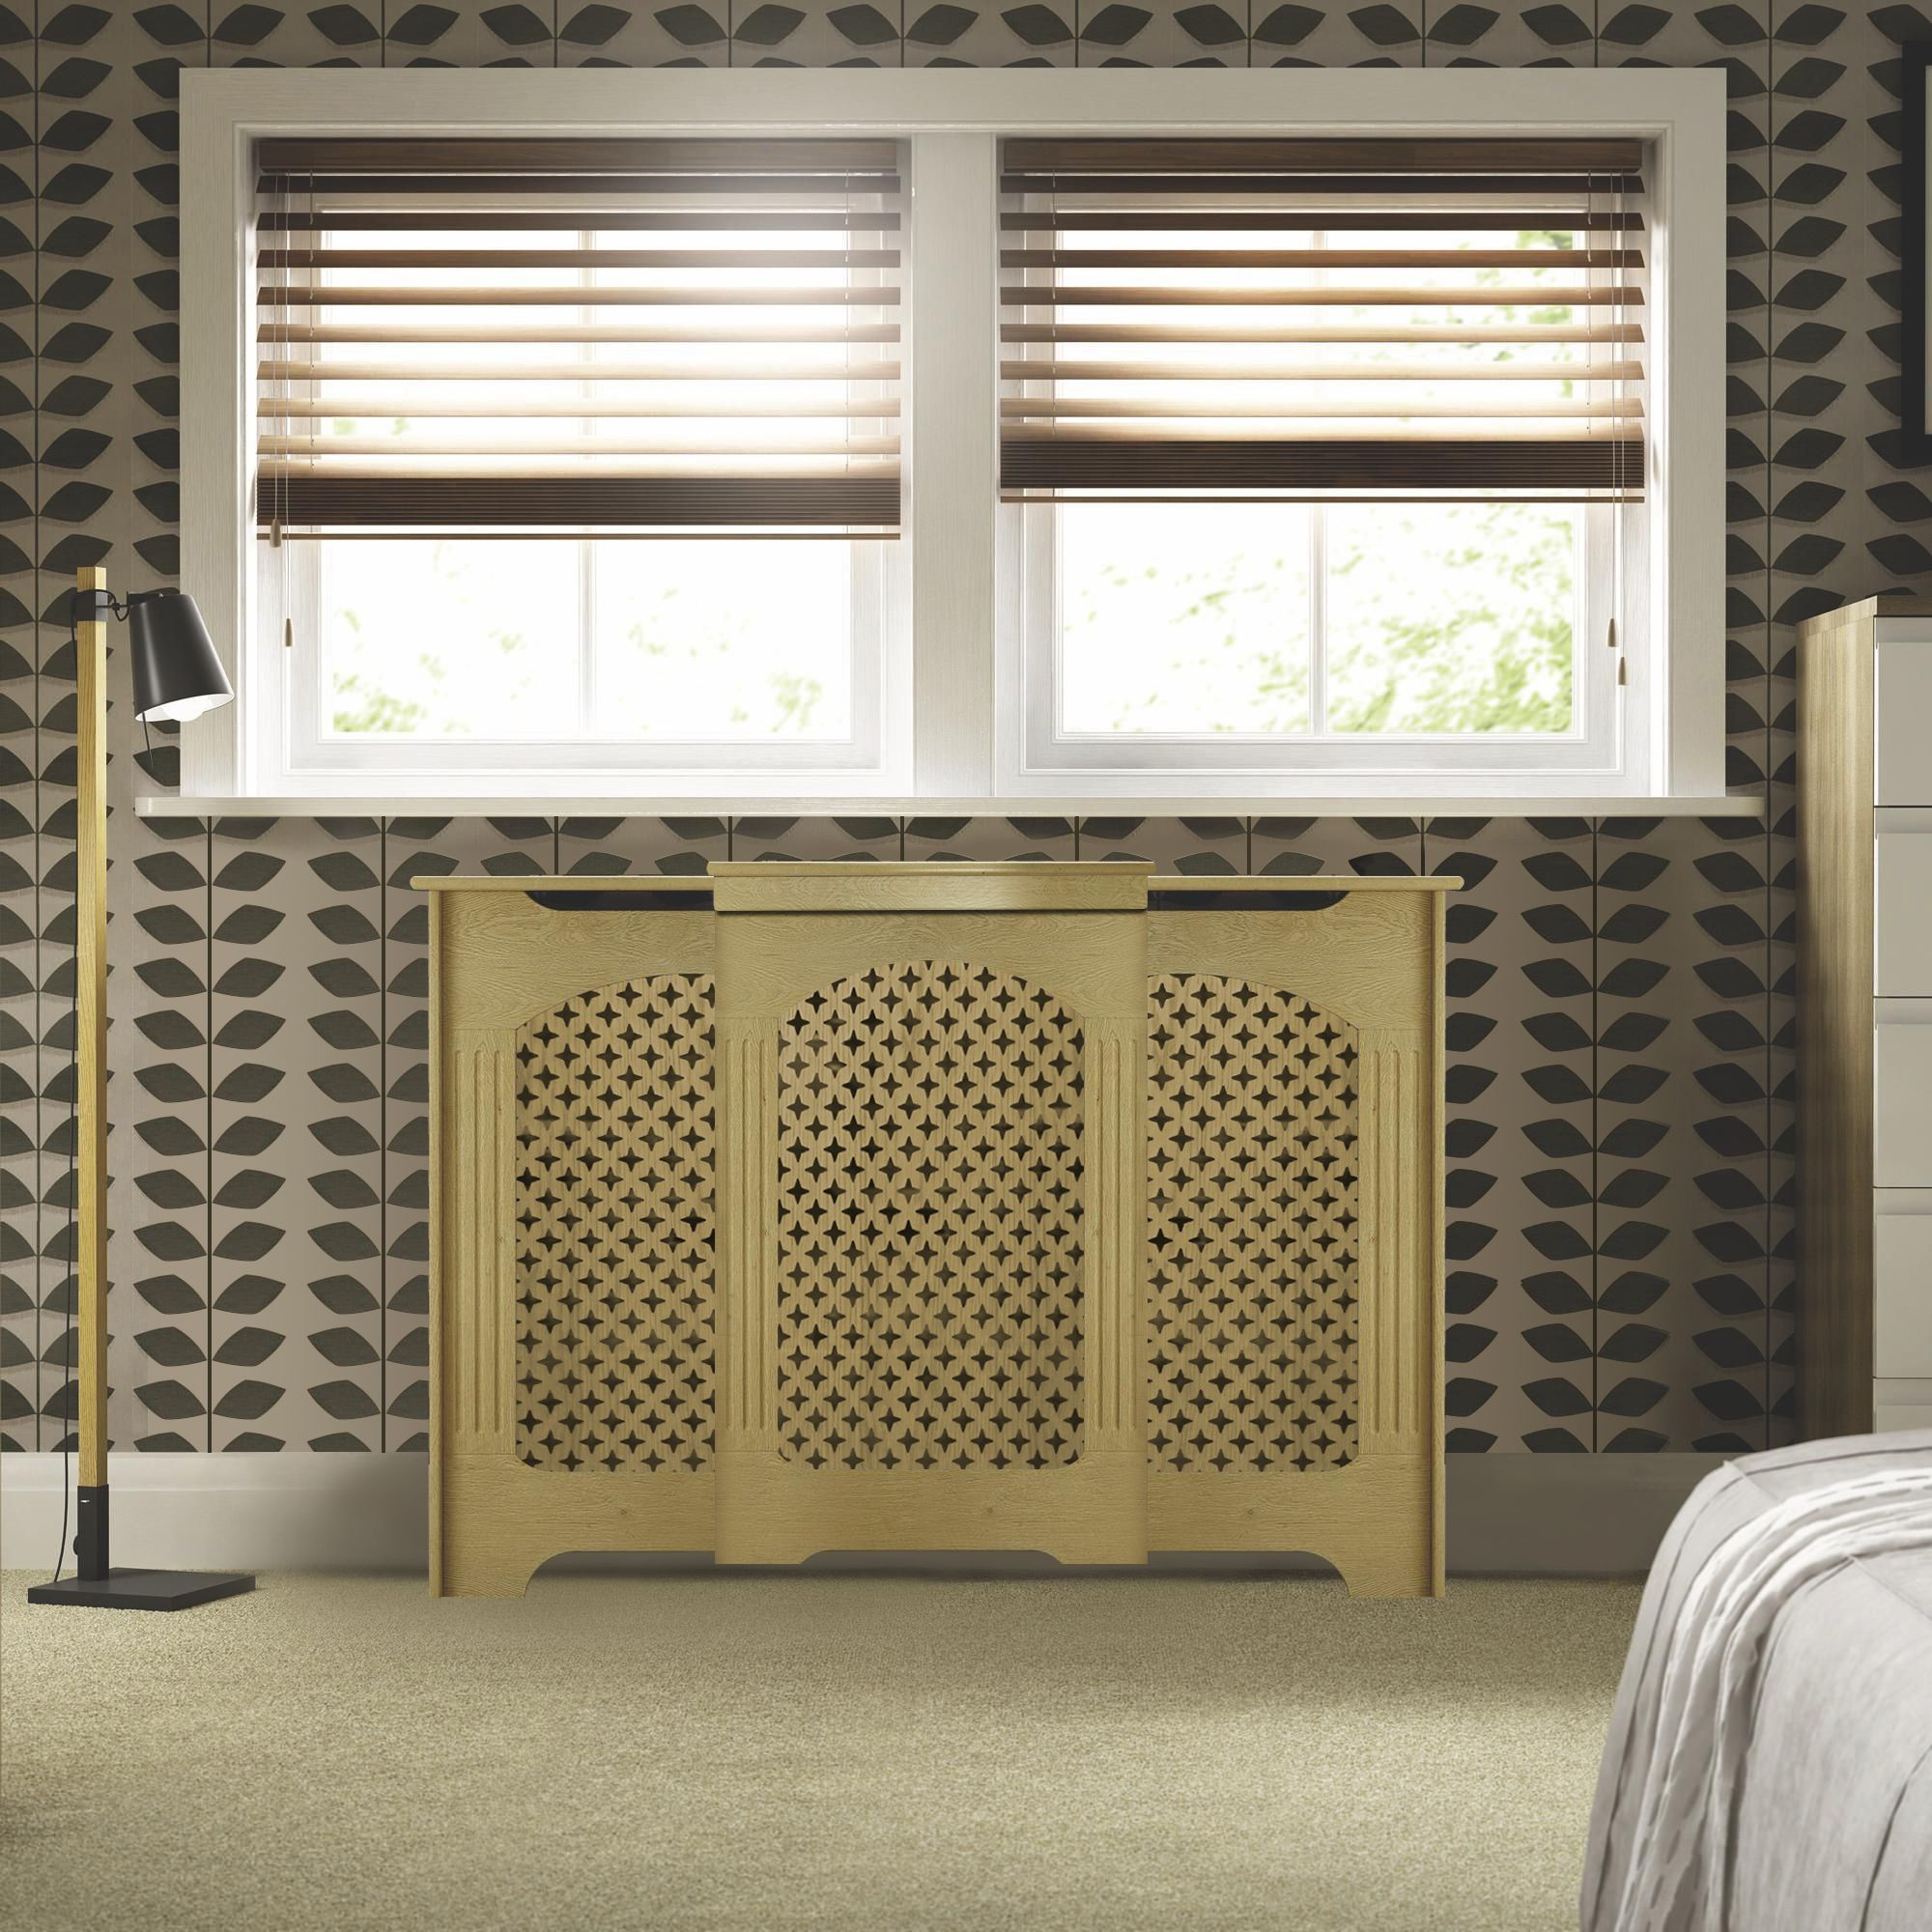 Cambridge Adjustable Small - Medium Oak Veneer Radiator